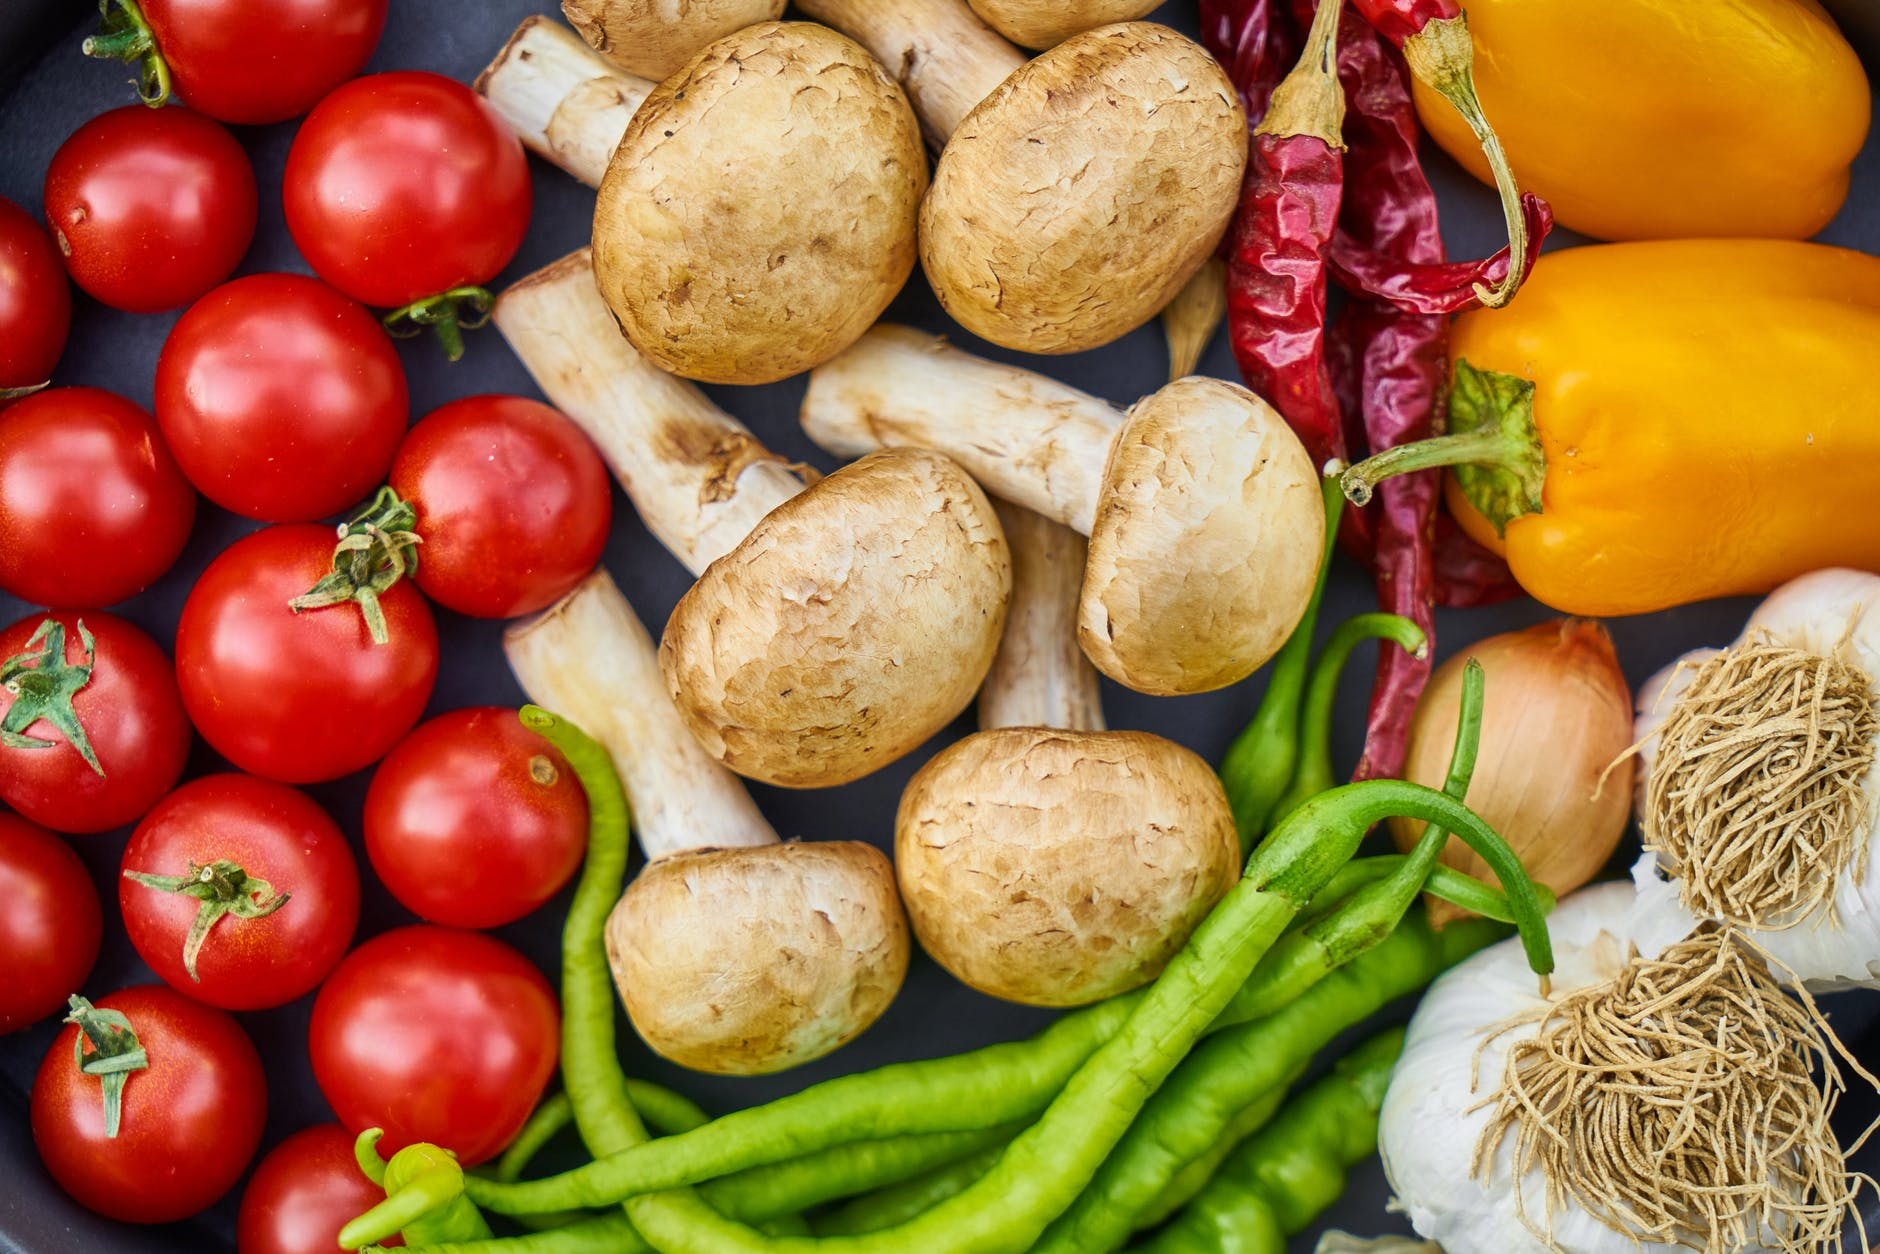 You are currently viewing Susquehanna County Food Council